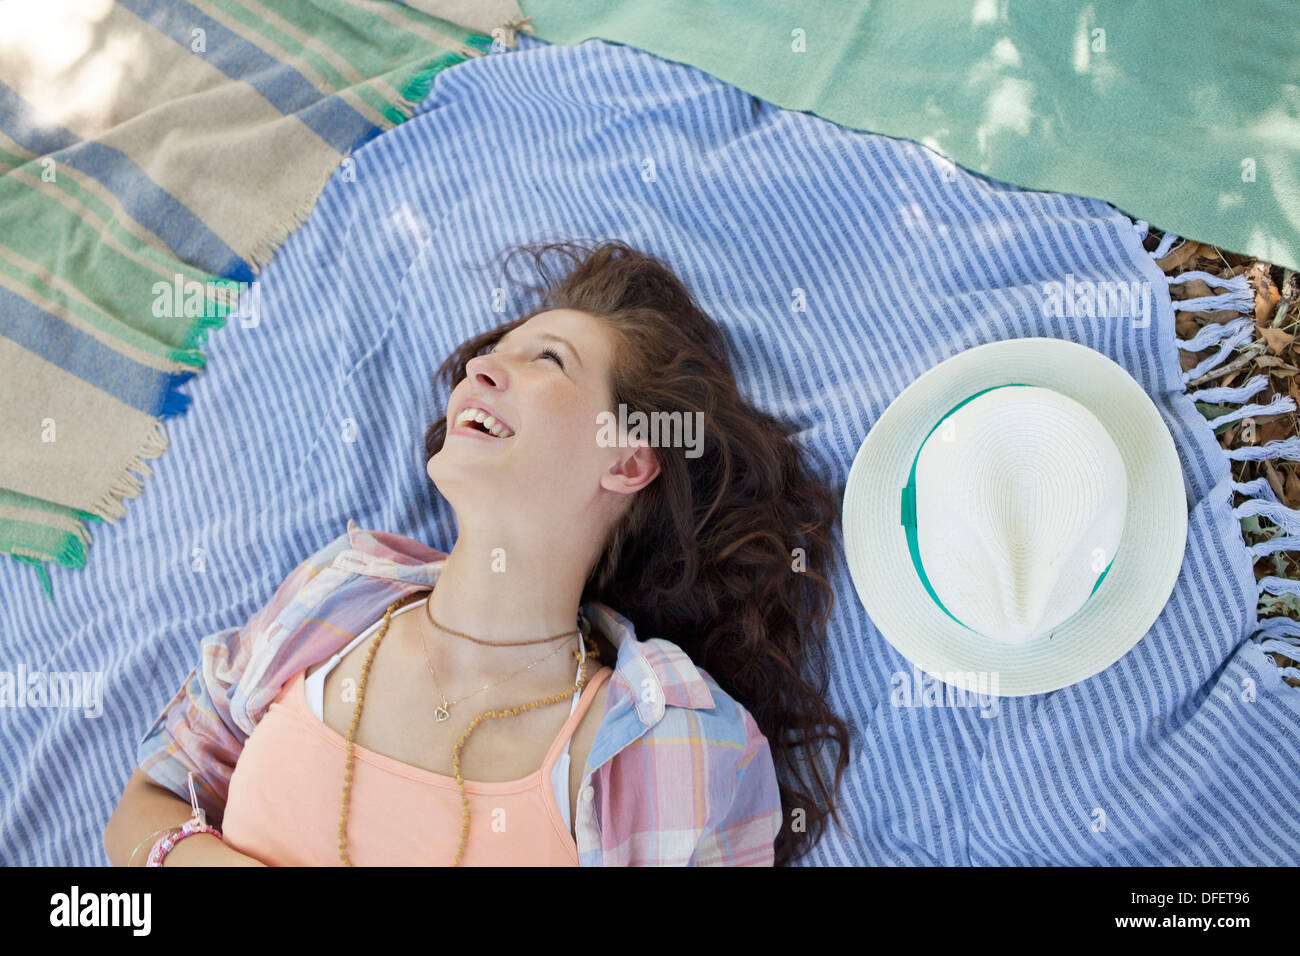 Woman laying on blanket outdoors Stock Photo